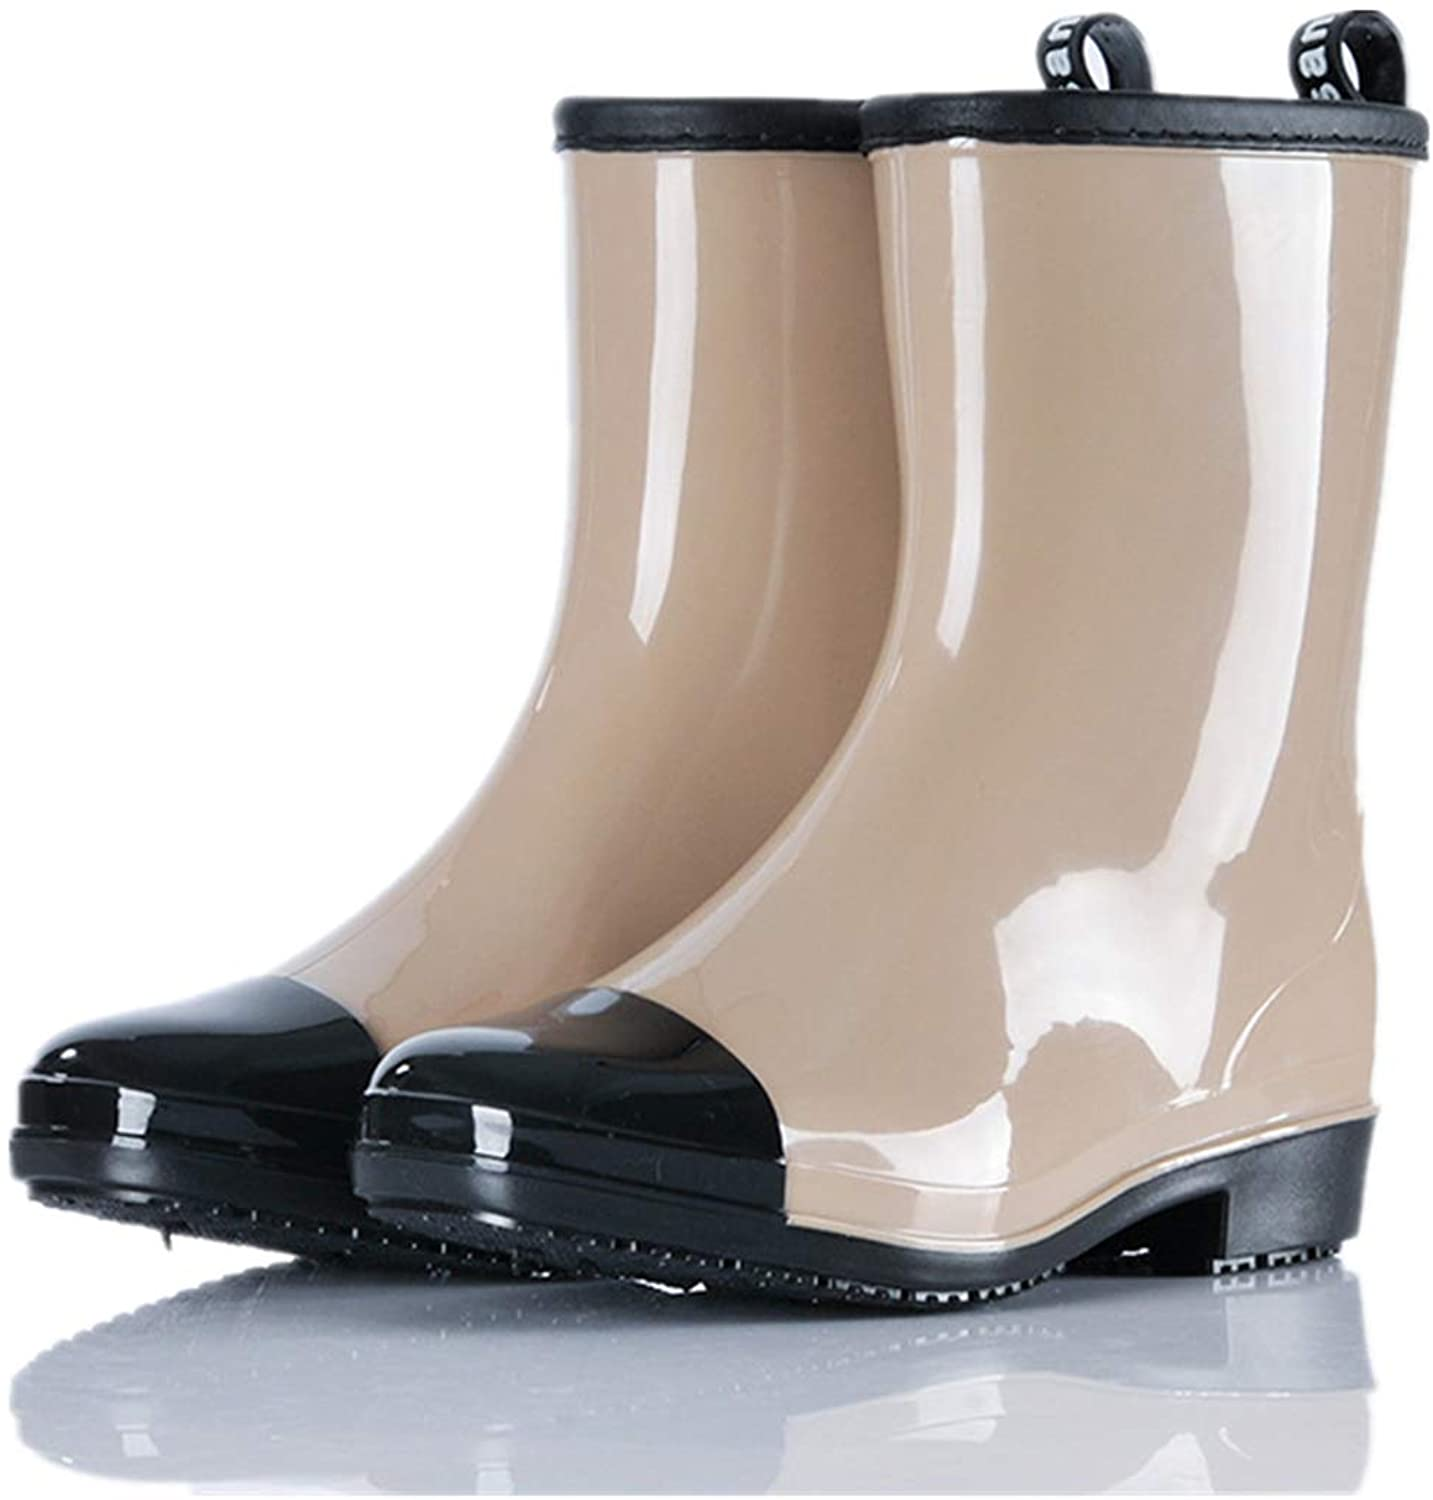 Women's Rain Boots Multiple color Mid Fashion Rubber Snow Boots Slip On Waterproof Rain Booties